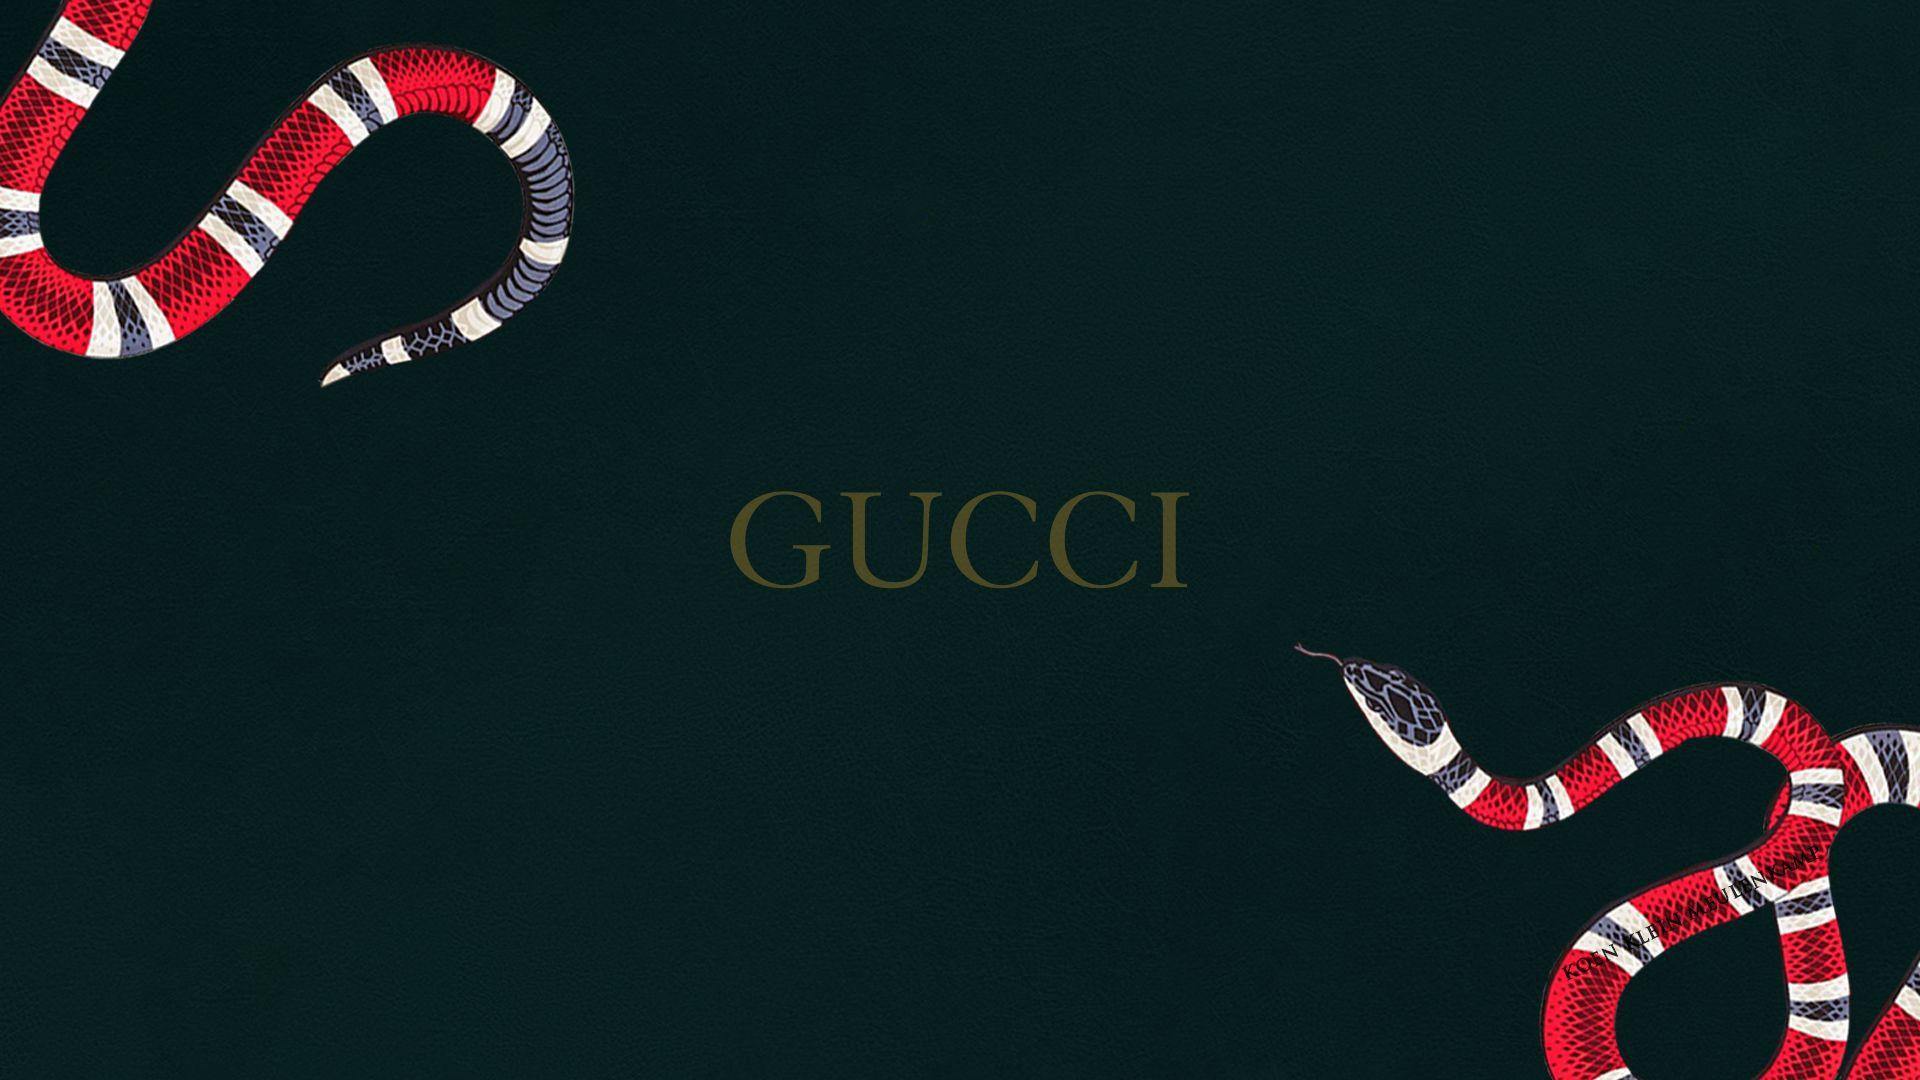 13 Gucci Snakes wallpapers + PSD files by fkkm1999